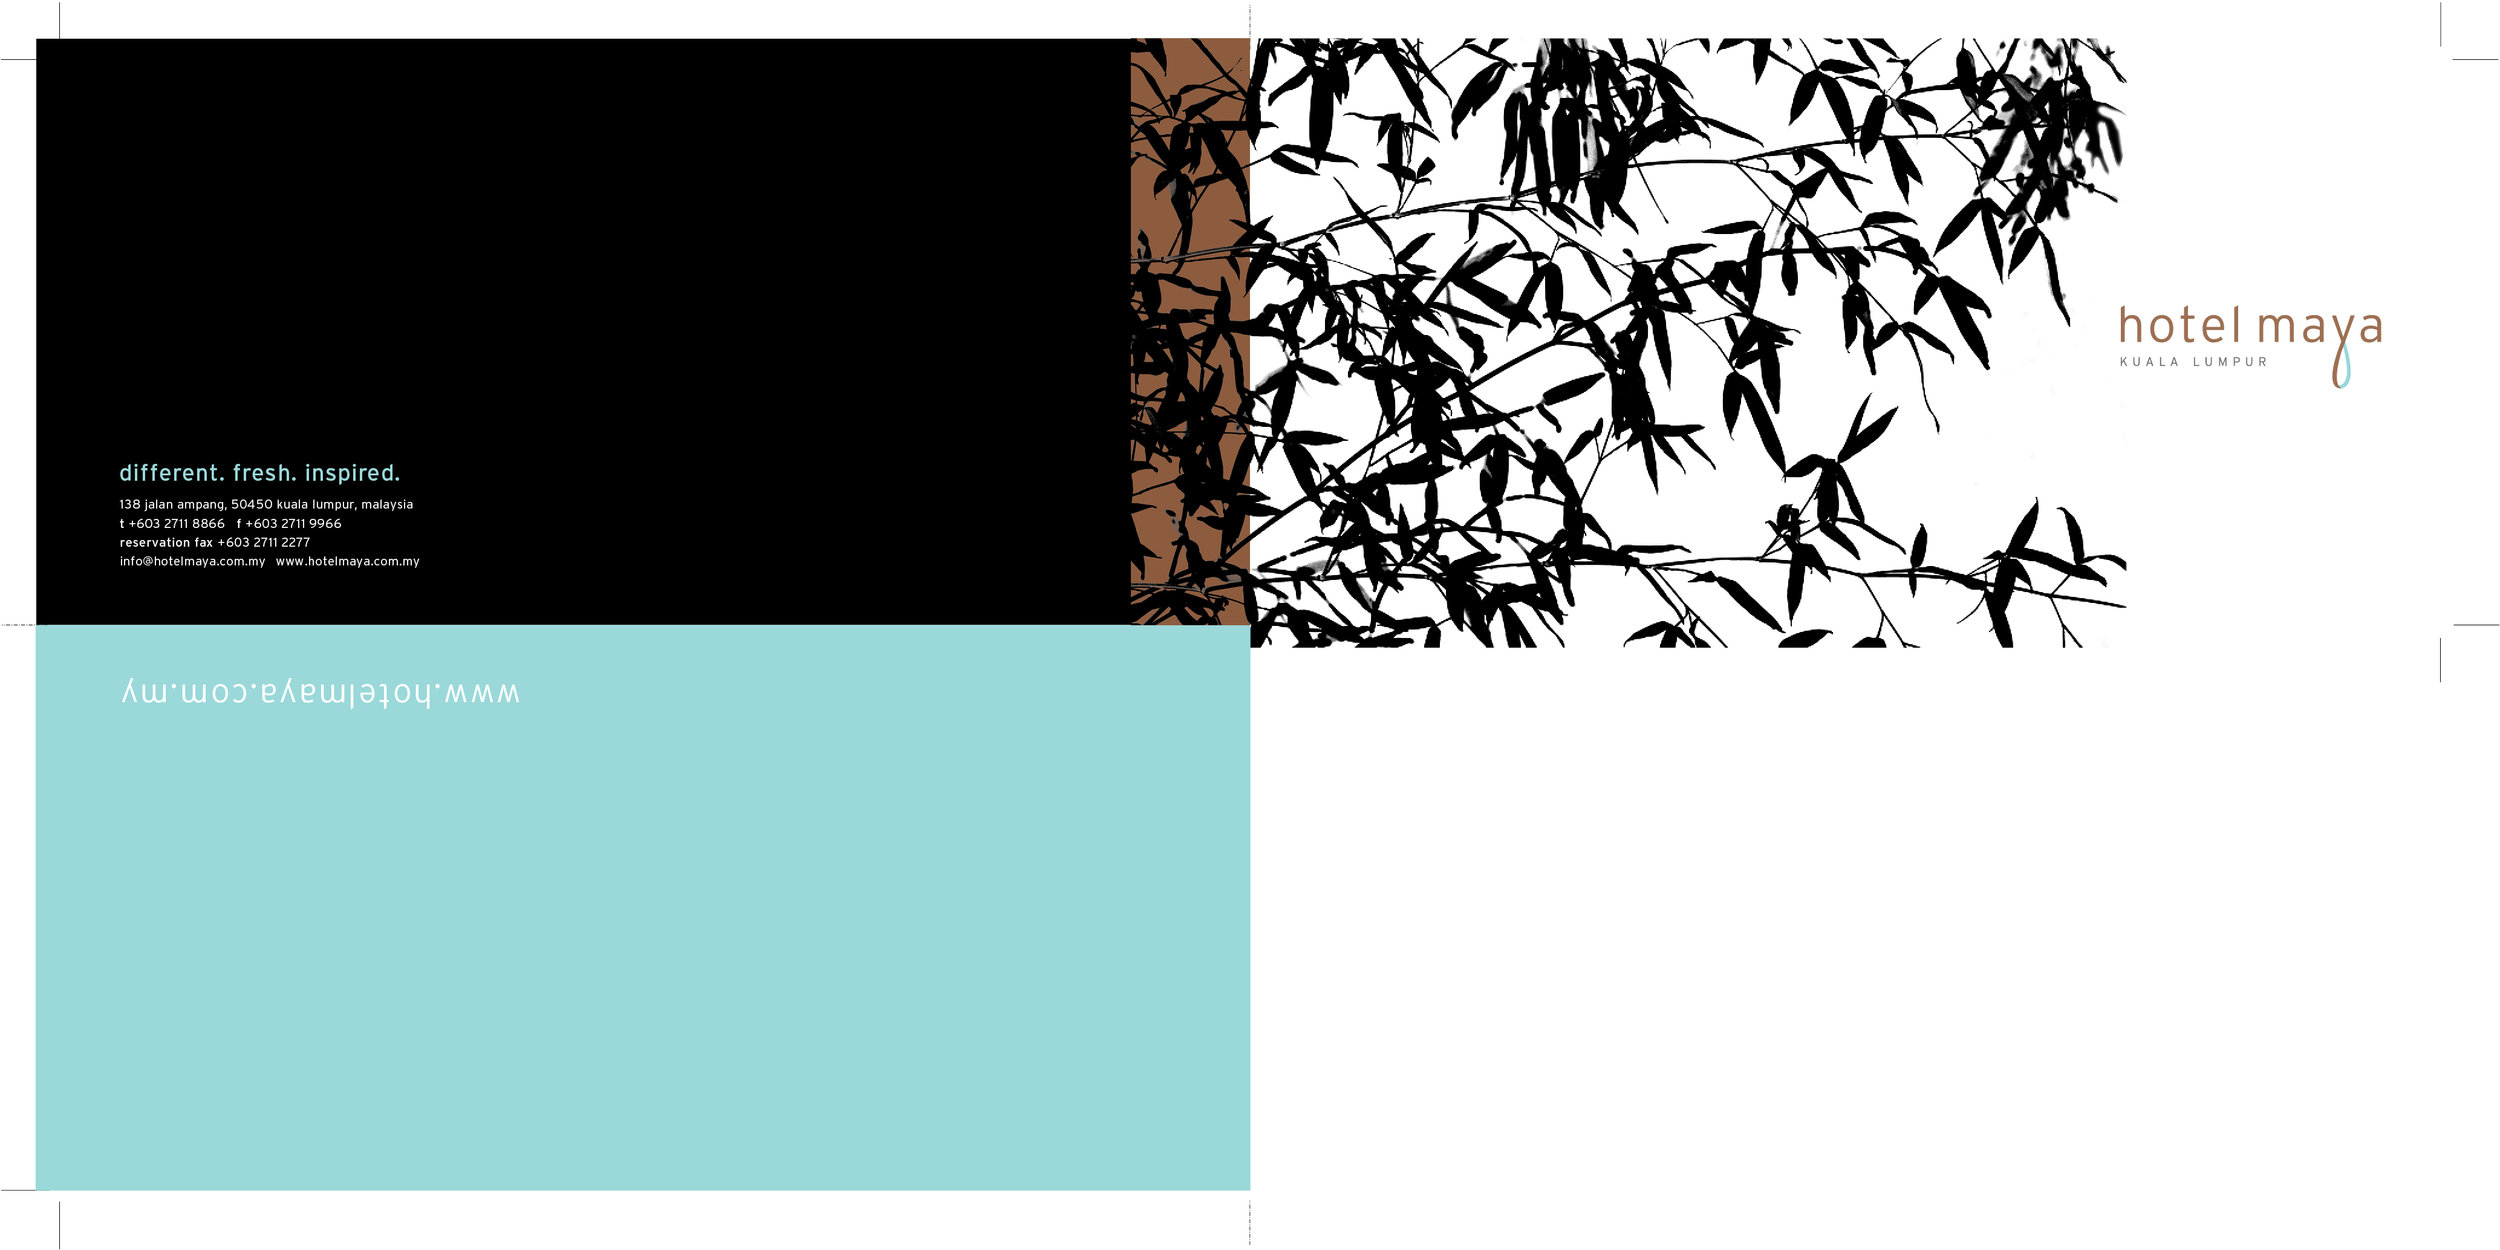 Simplicity and sophistication expressed through a restricted colour palette of bronze, eggshell blue and black for the hotel's main brochure.